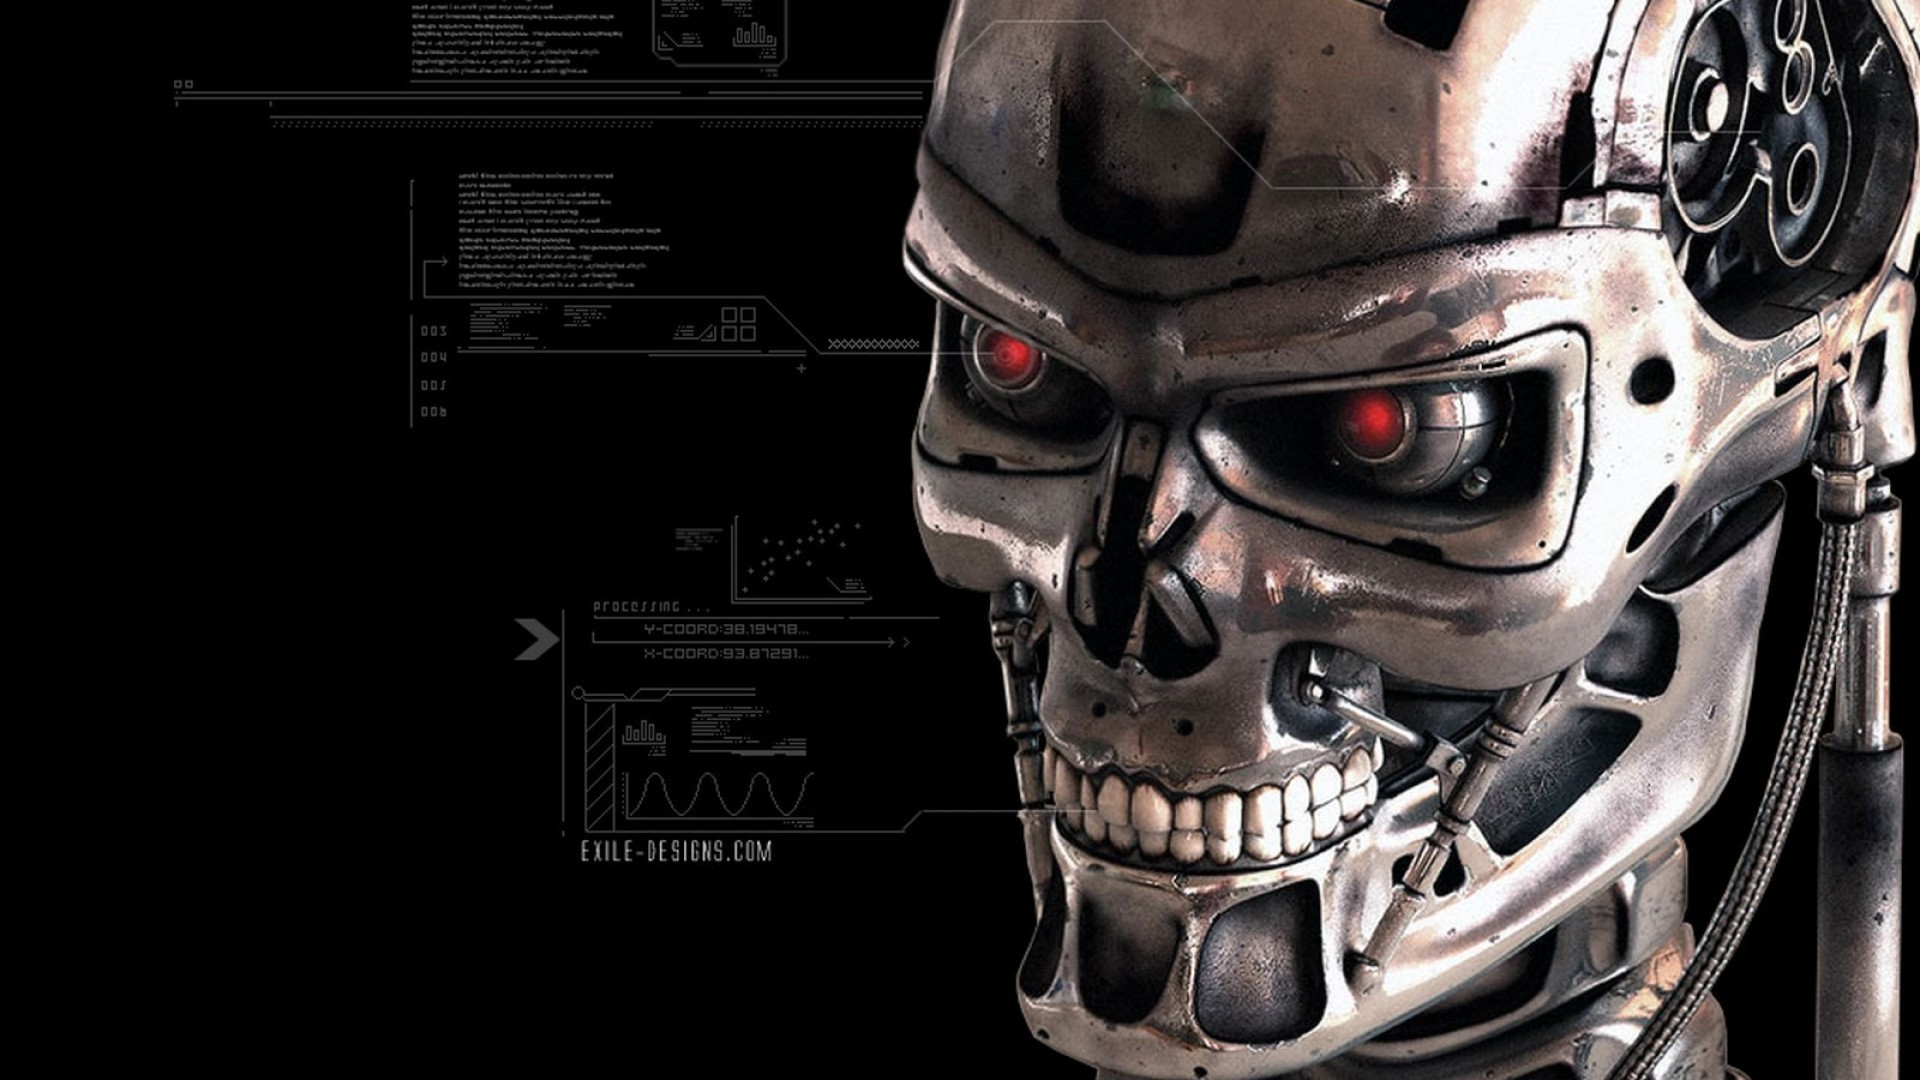 terminator salvation background wallpaper Terminator salvation (2009) wallpaper for download home news celebrity news movie news tv news terminator salvation wallpaper.